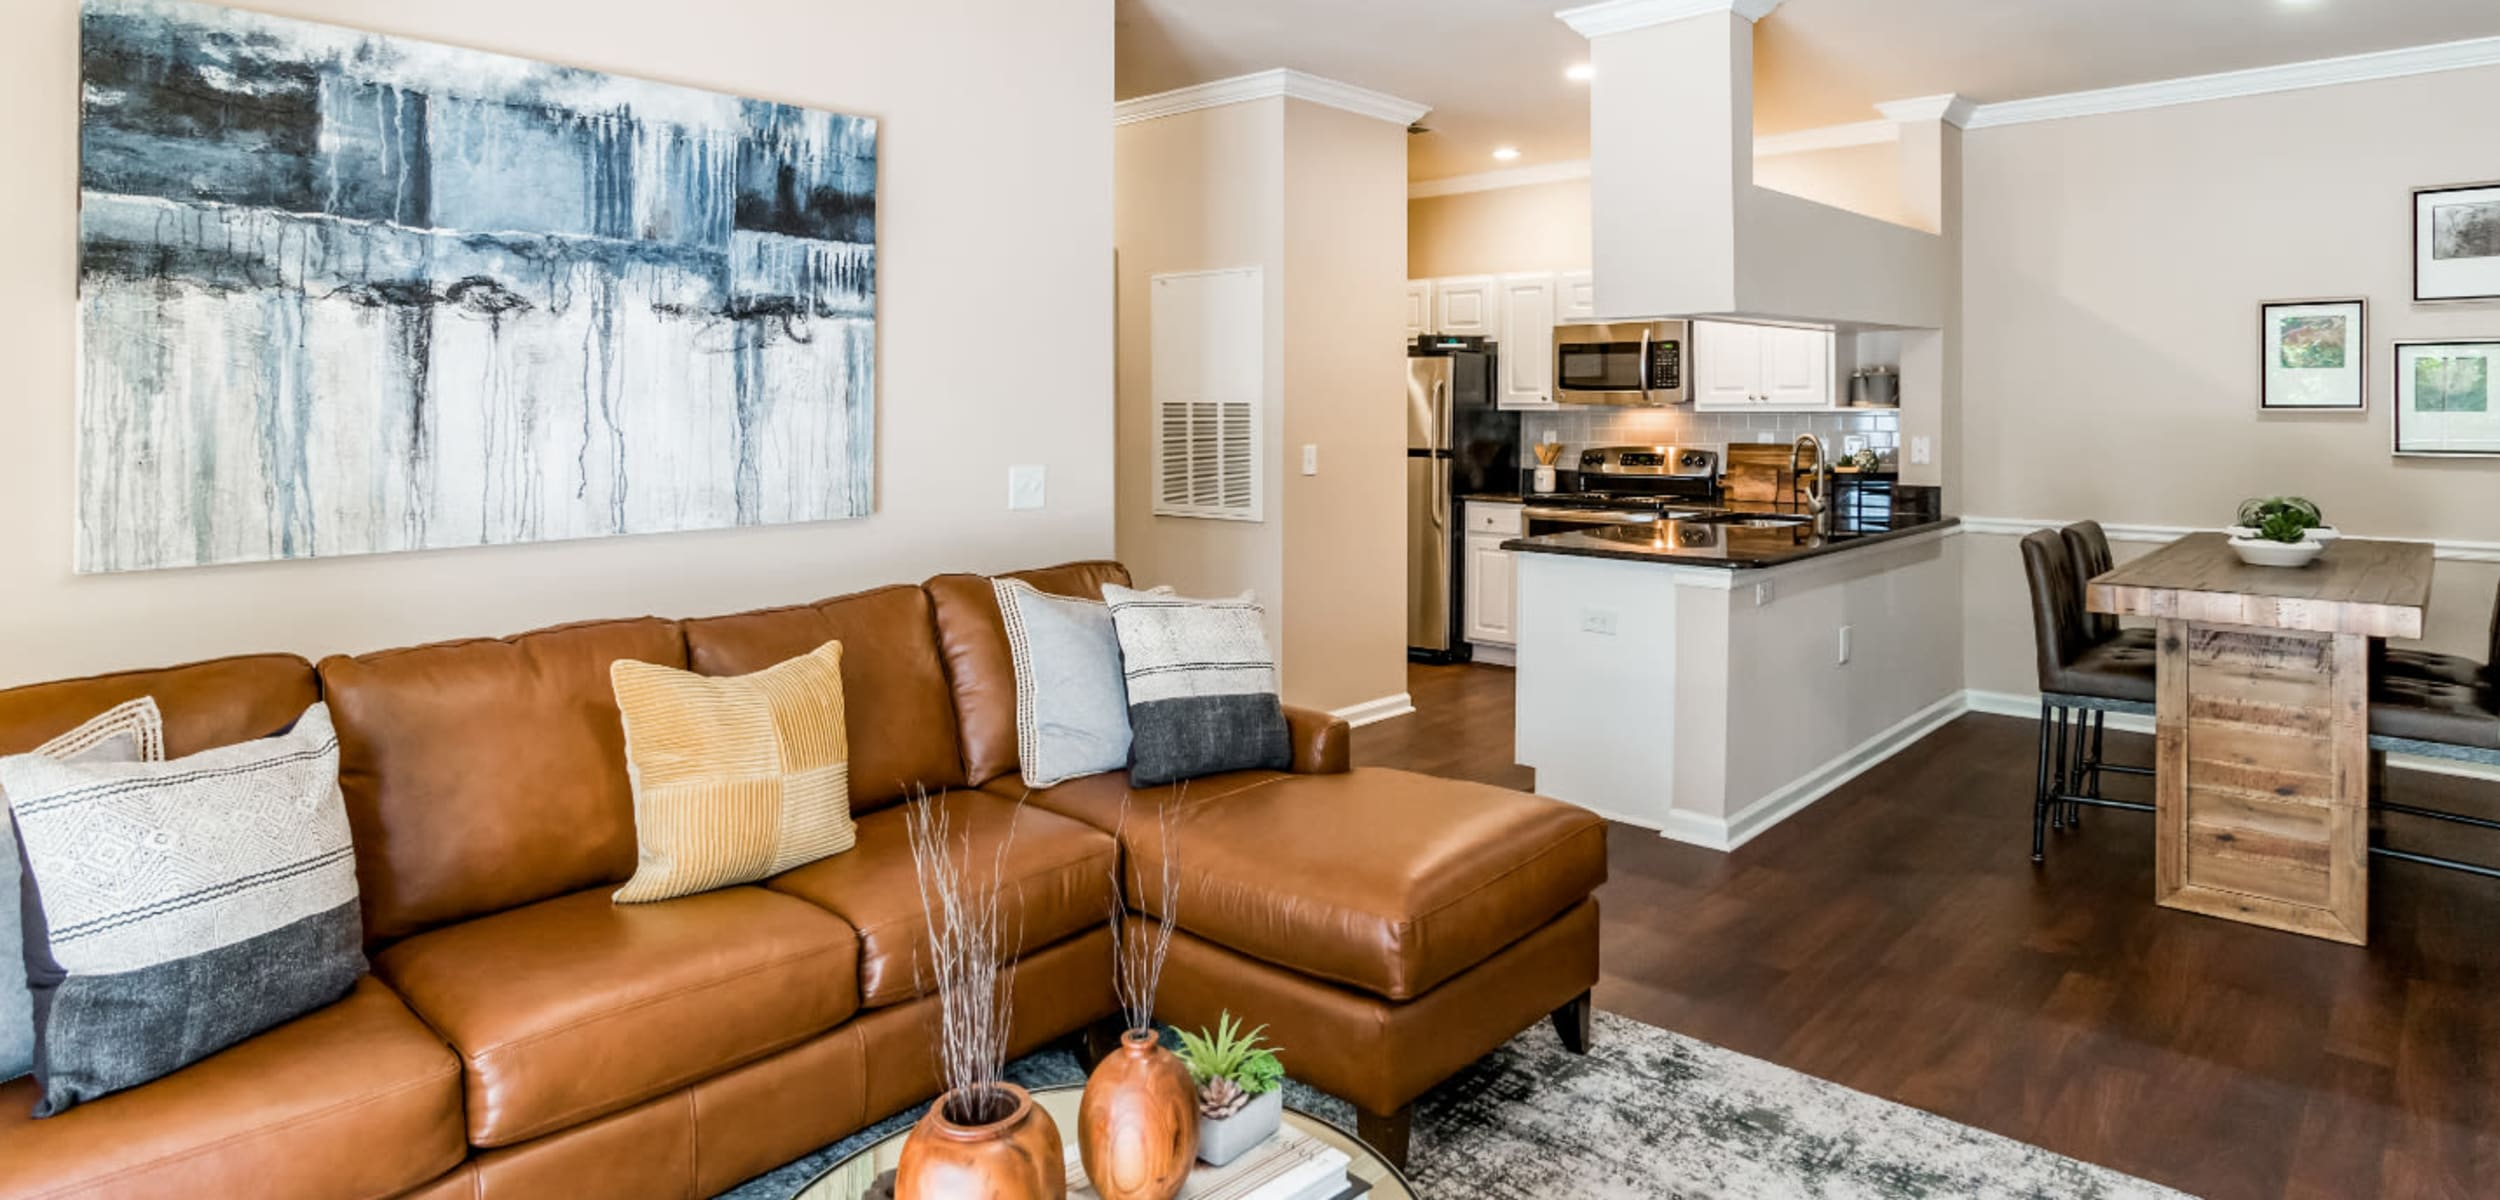 Spacious living area with modest dining area and wood flooring at Marquis at Carmel Commons in Charlotte, North Carolina